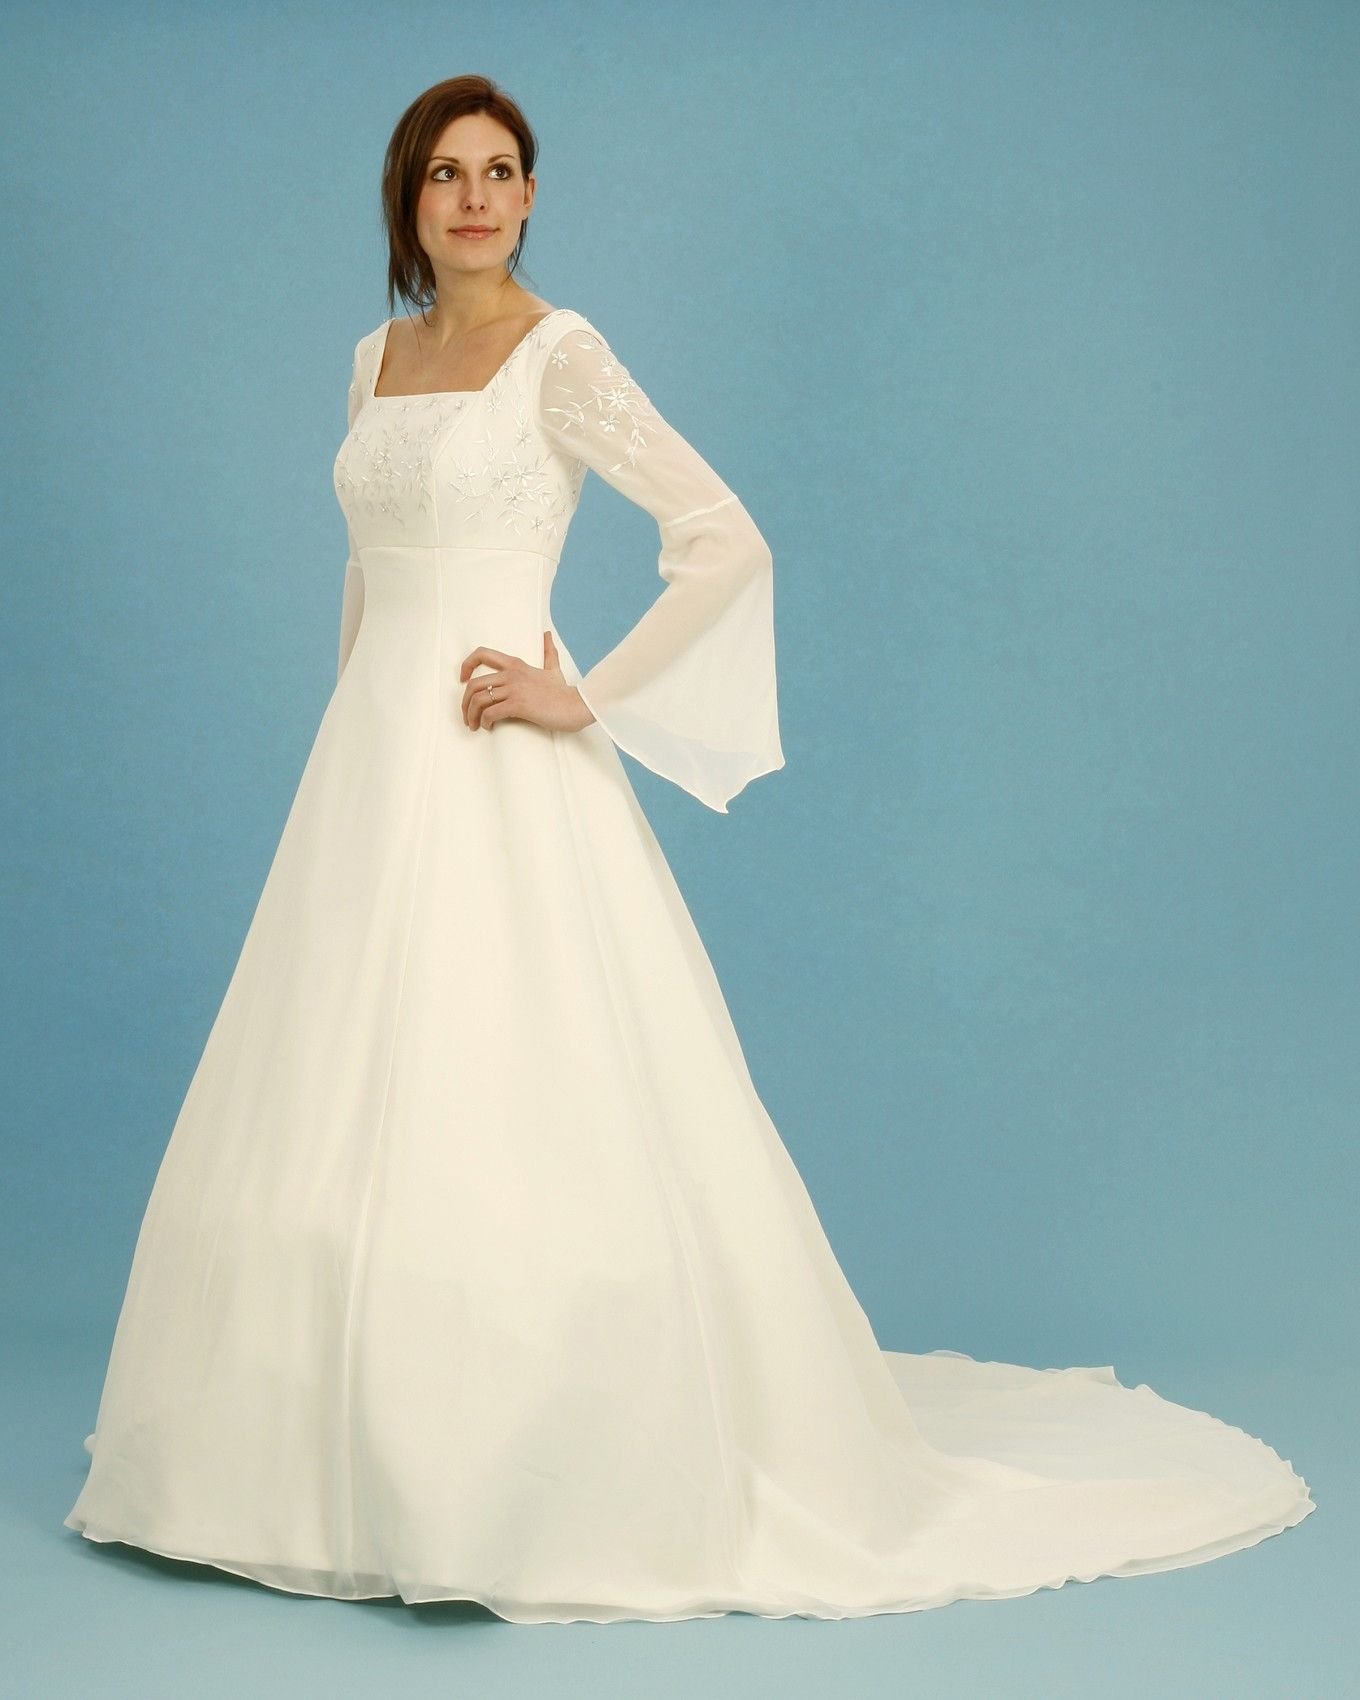 Renasscience Wedding Gowns Delivery White Medieval Style Long Sleeve Dress Uk Size 22: Meval Style Wedding Dress At Websimilar.org